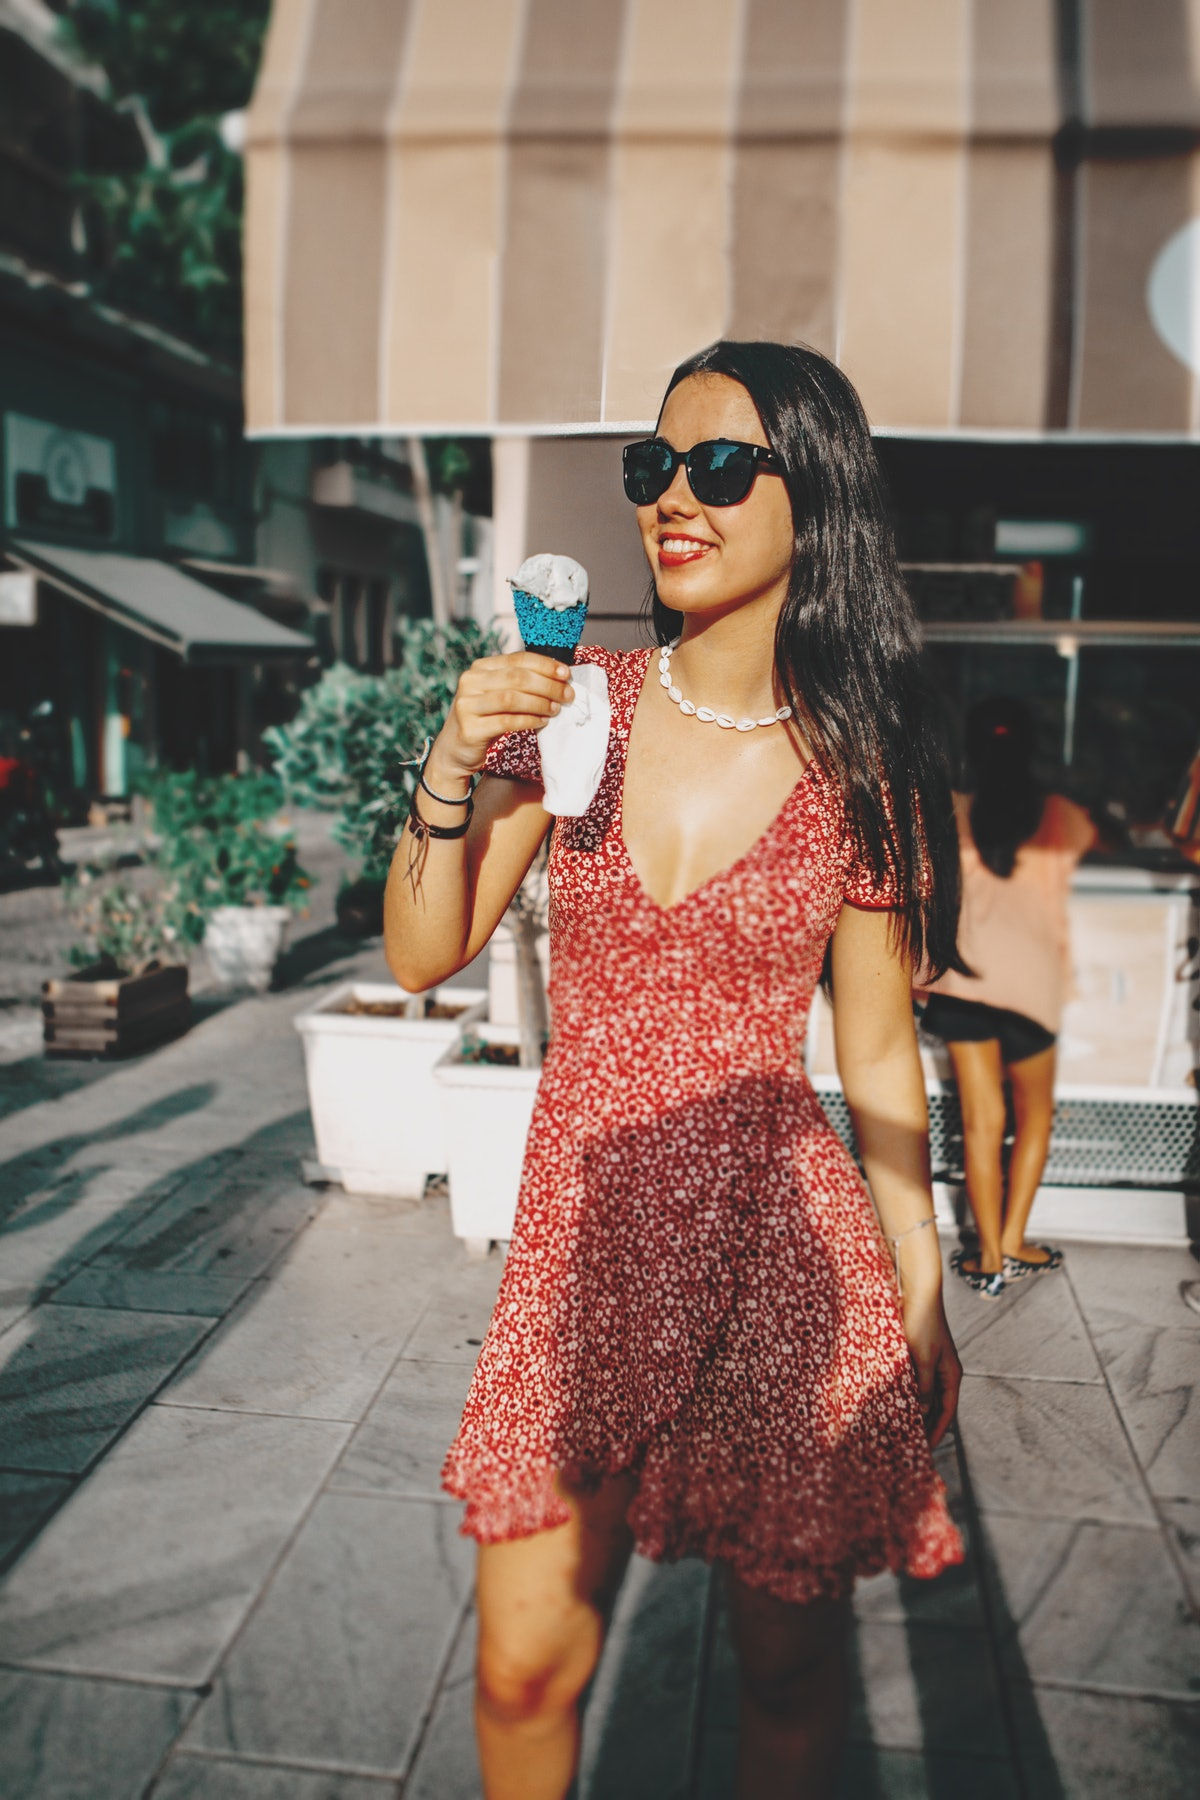 Young woman wearing sunglasses and a summer dress holding an ice cream cone before posting a pic on ...